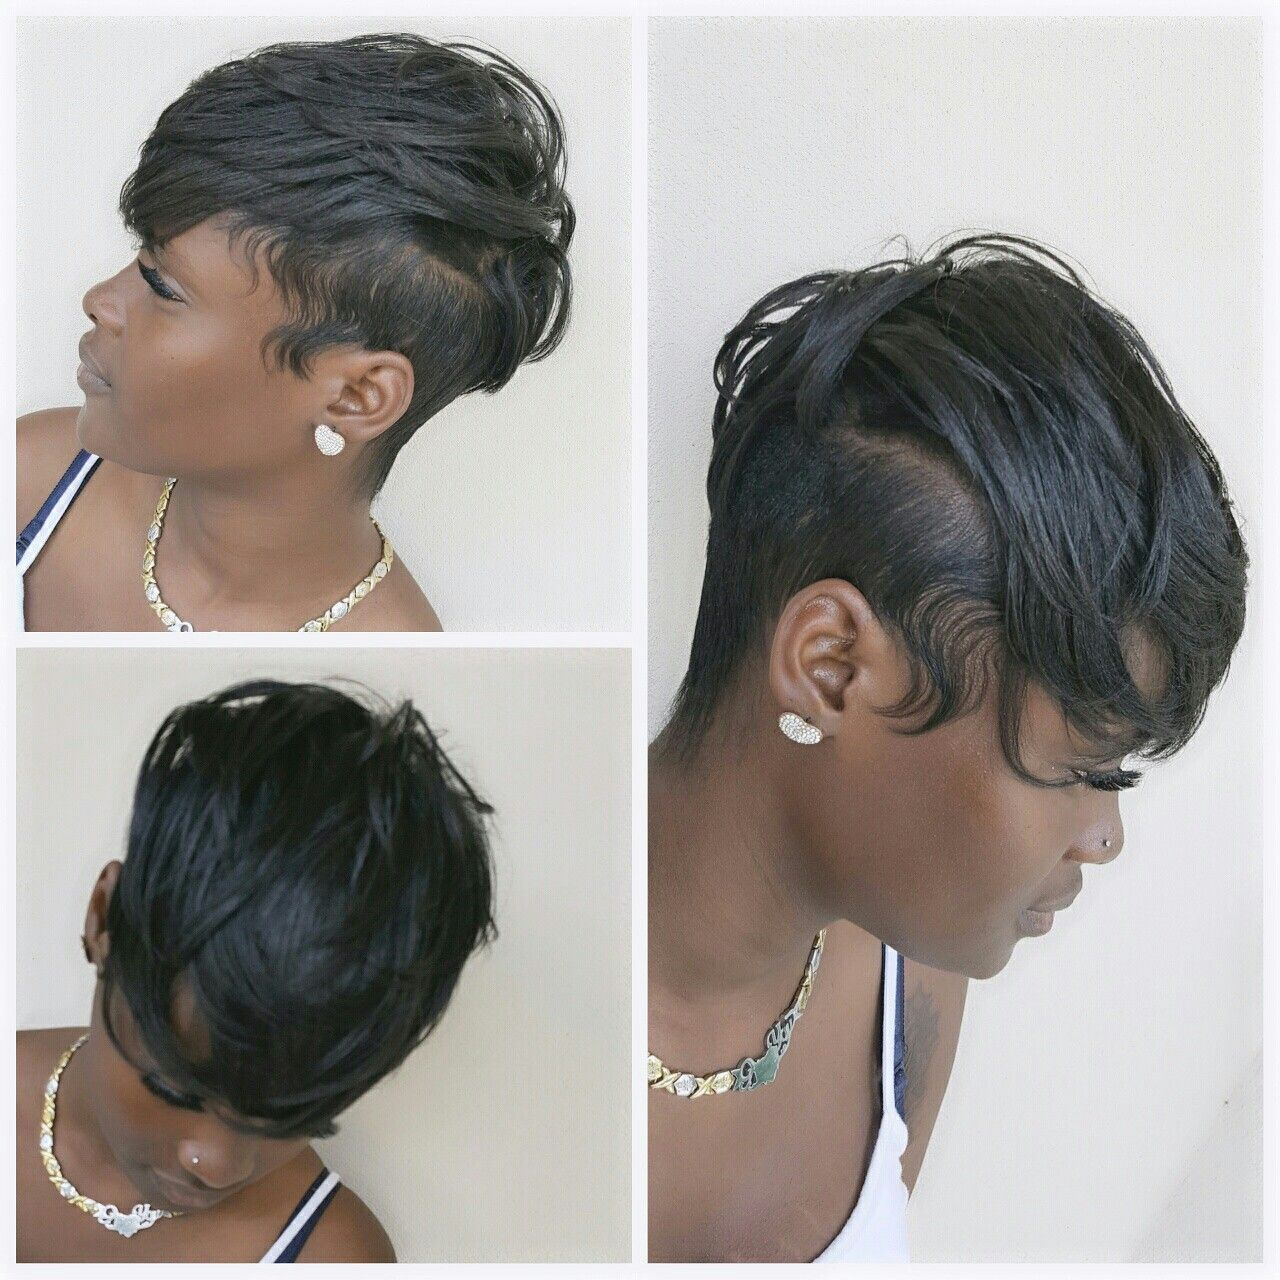 Pin on Black girls hairstyles